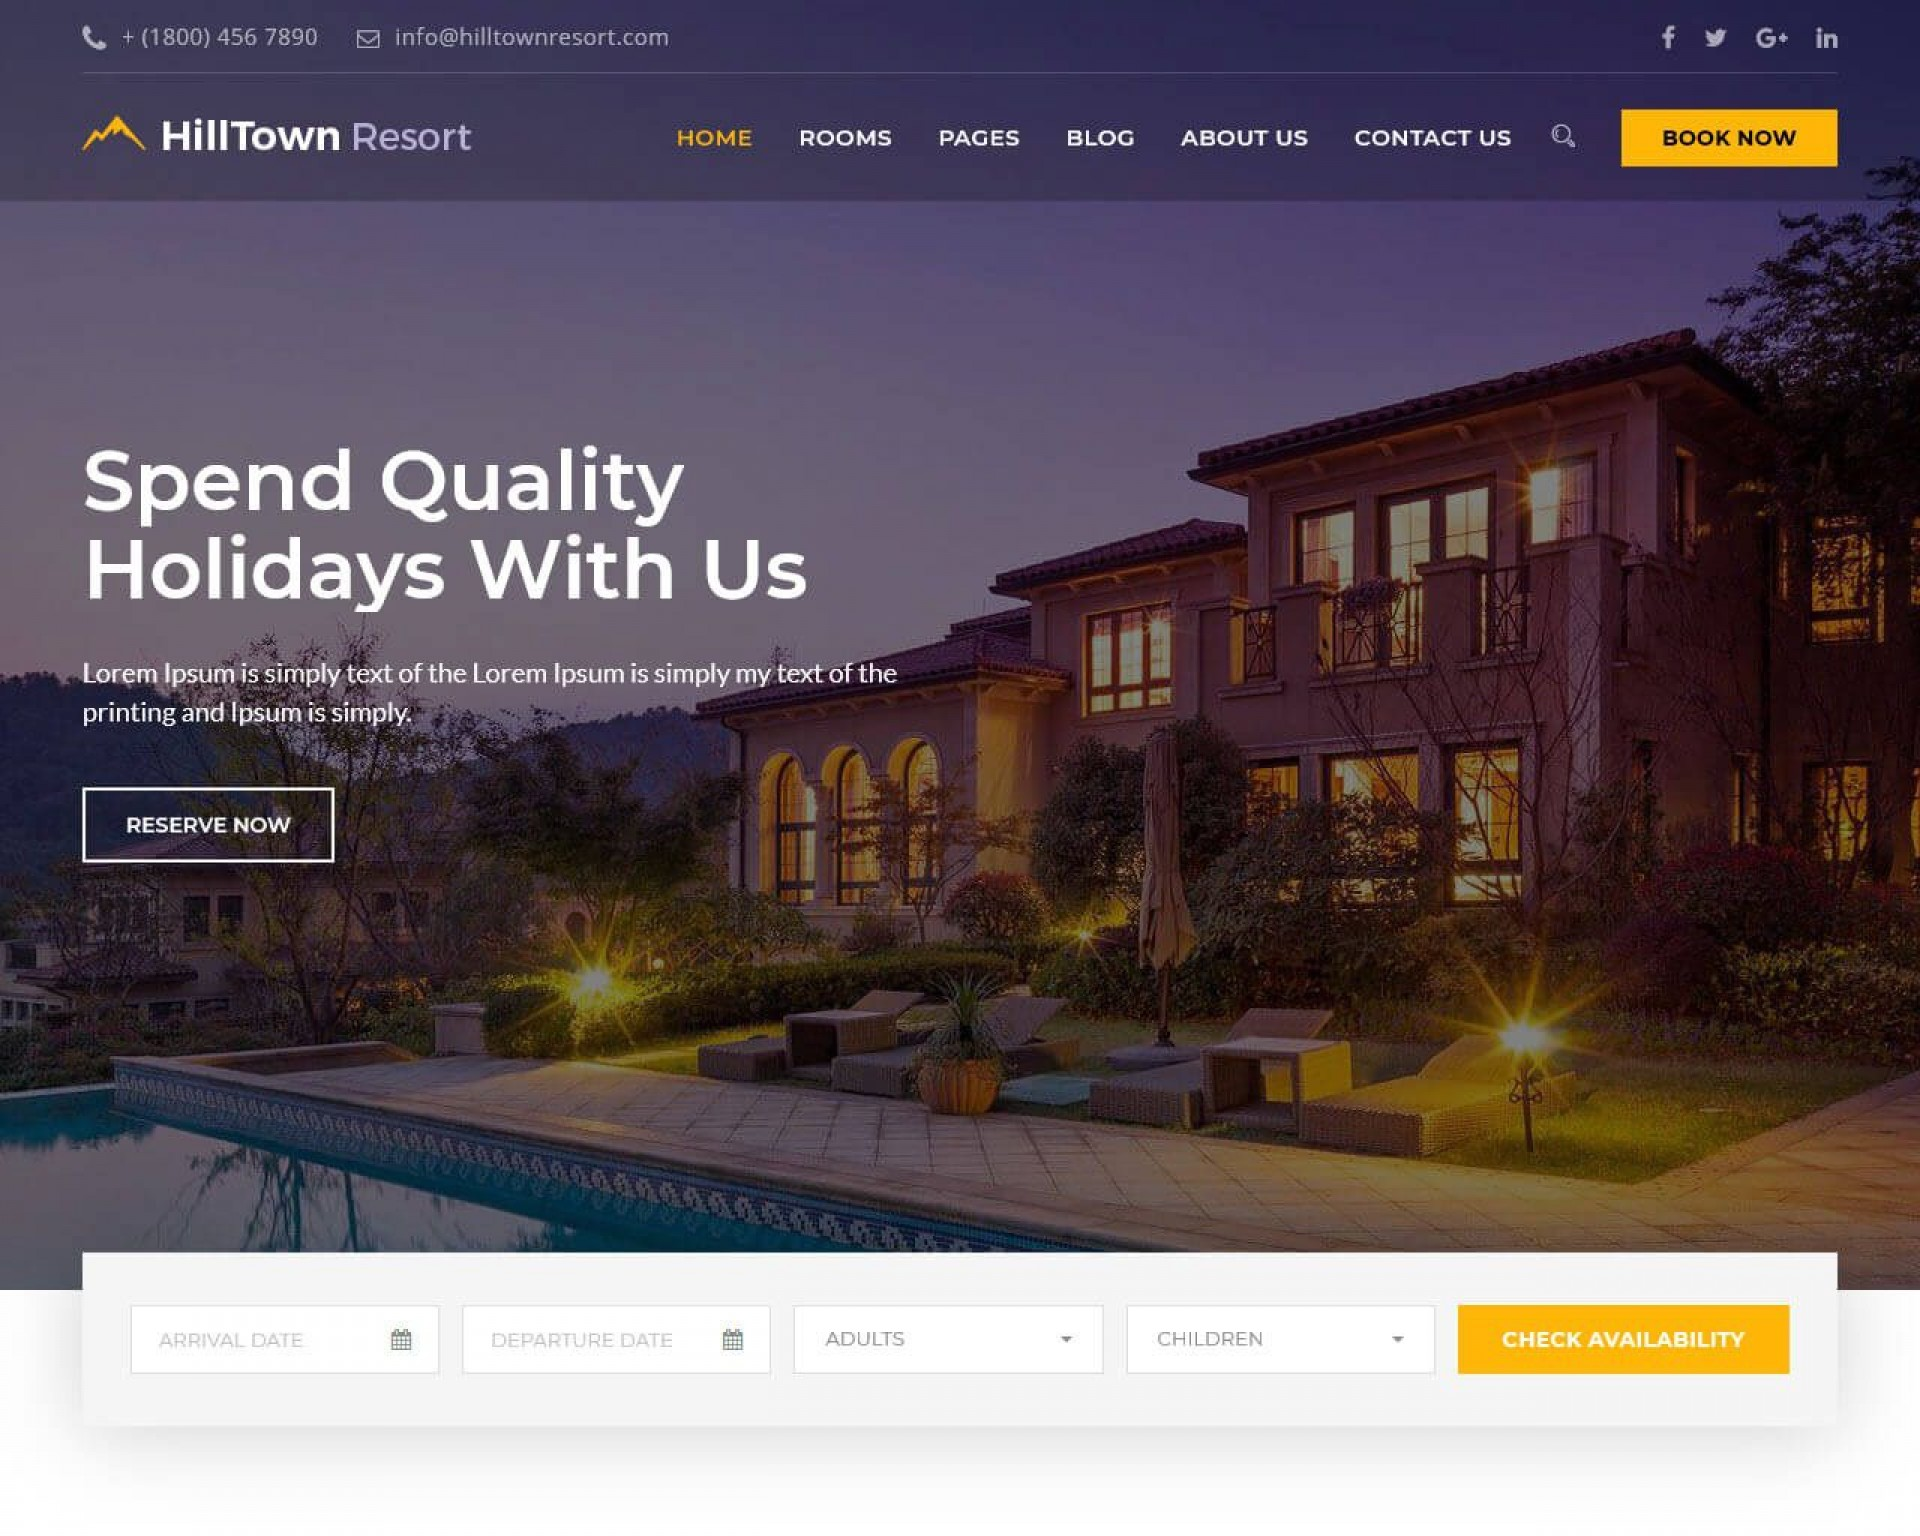 001 Best Hotel Website Template Html Free Download Idea  With Cs Responsive Jquery And Restaurant1920